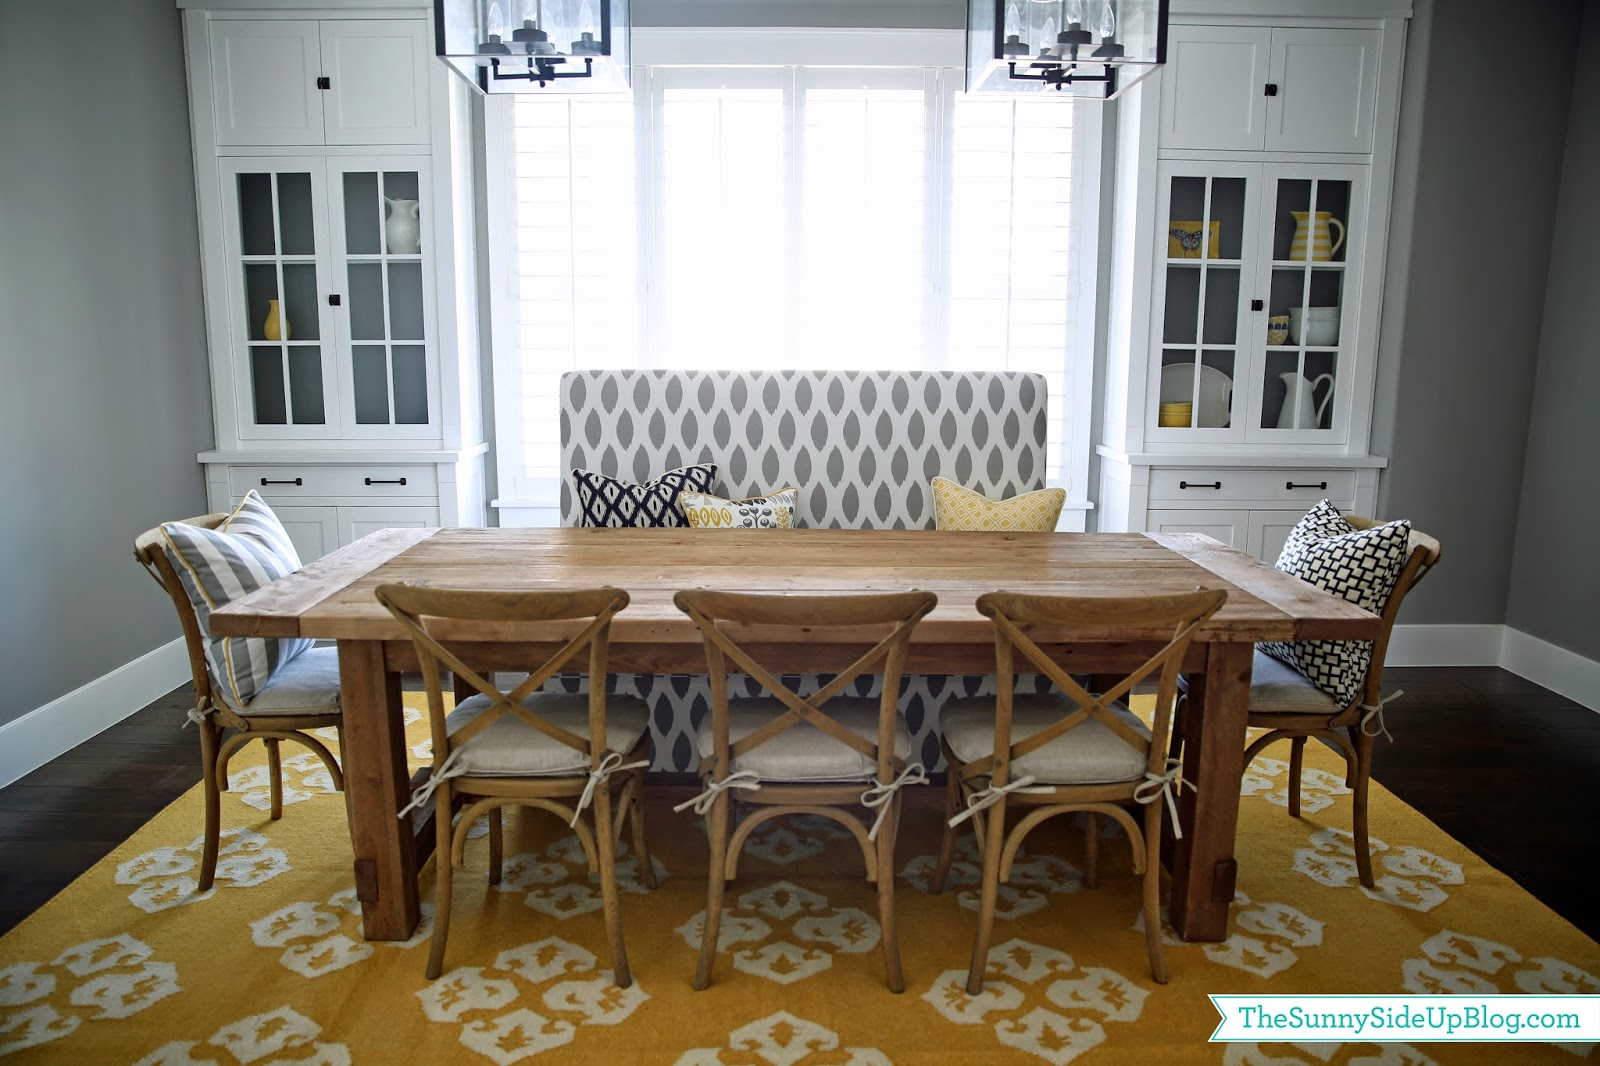 Dining Room Decor Update (bench, Chairs, Pillows)   The Sunny Side Up Blog